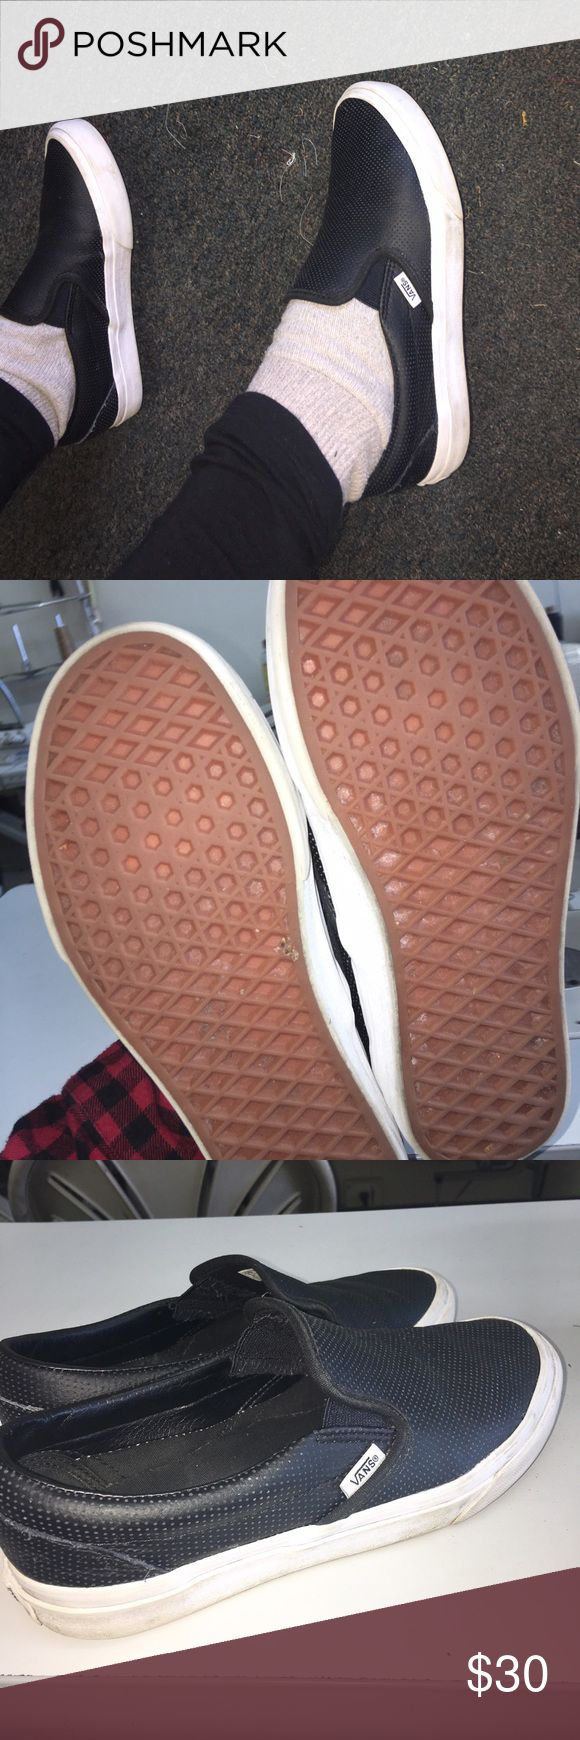 Vans leather slide on shoes  Leather slide on vans shoes size 7.5. Great and comfy. In good condition. Skater style so cute flannel and leggings ❤️ comes with box! PRICE FIRM! Vans Shoes Sneakers